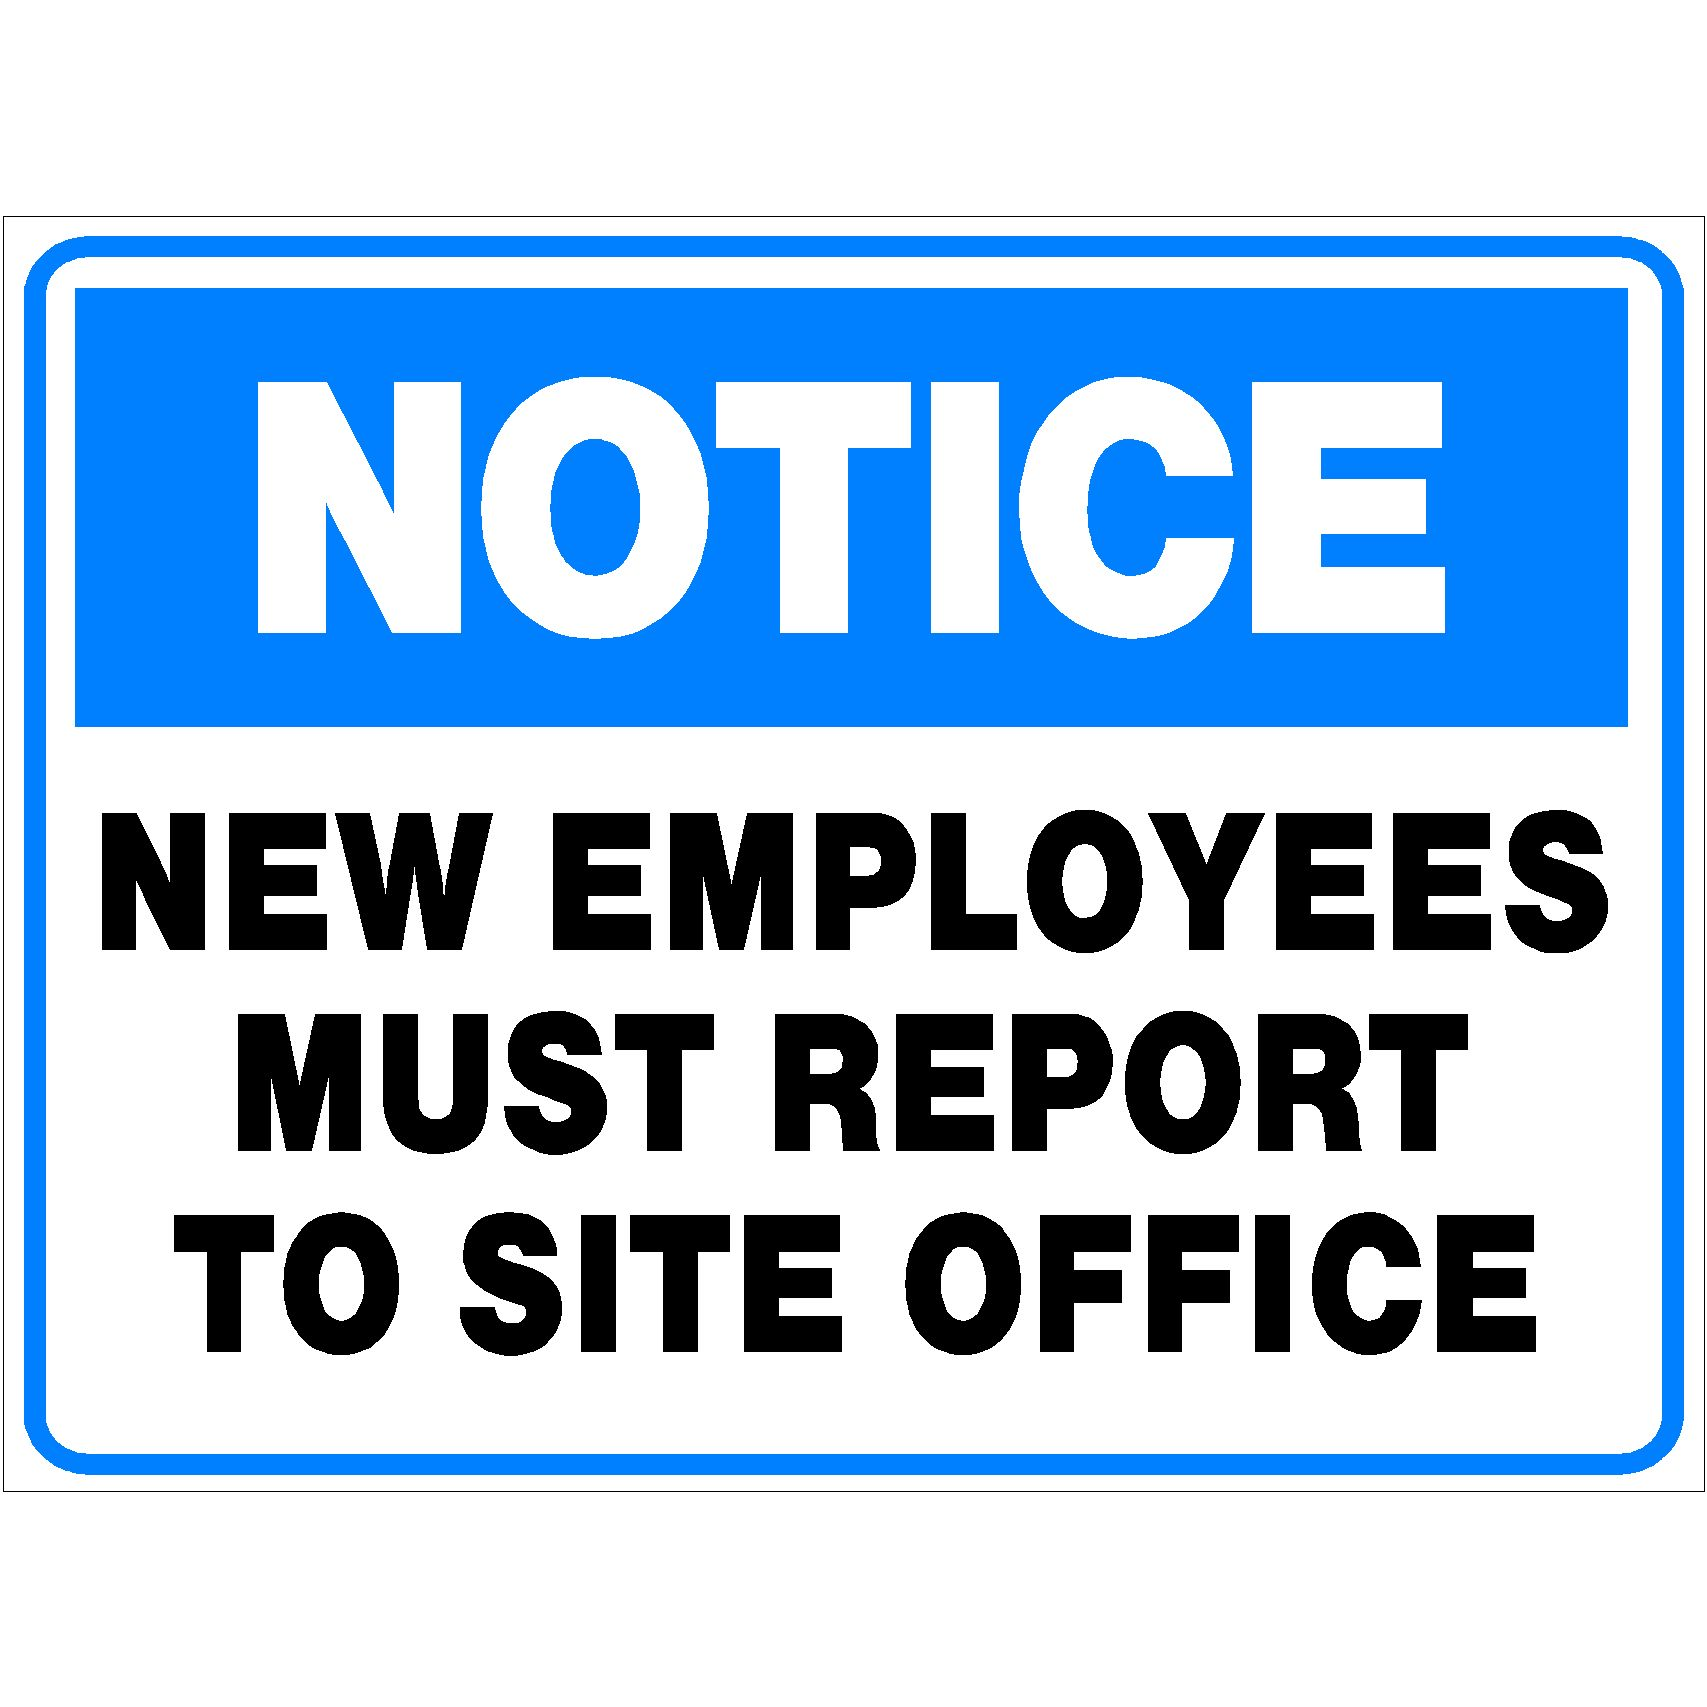 Notice New Employees Must Report To Site Office